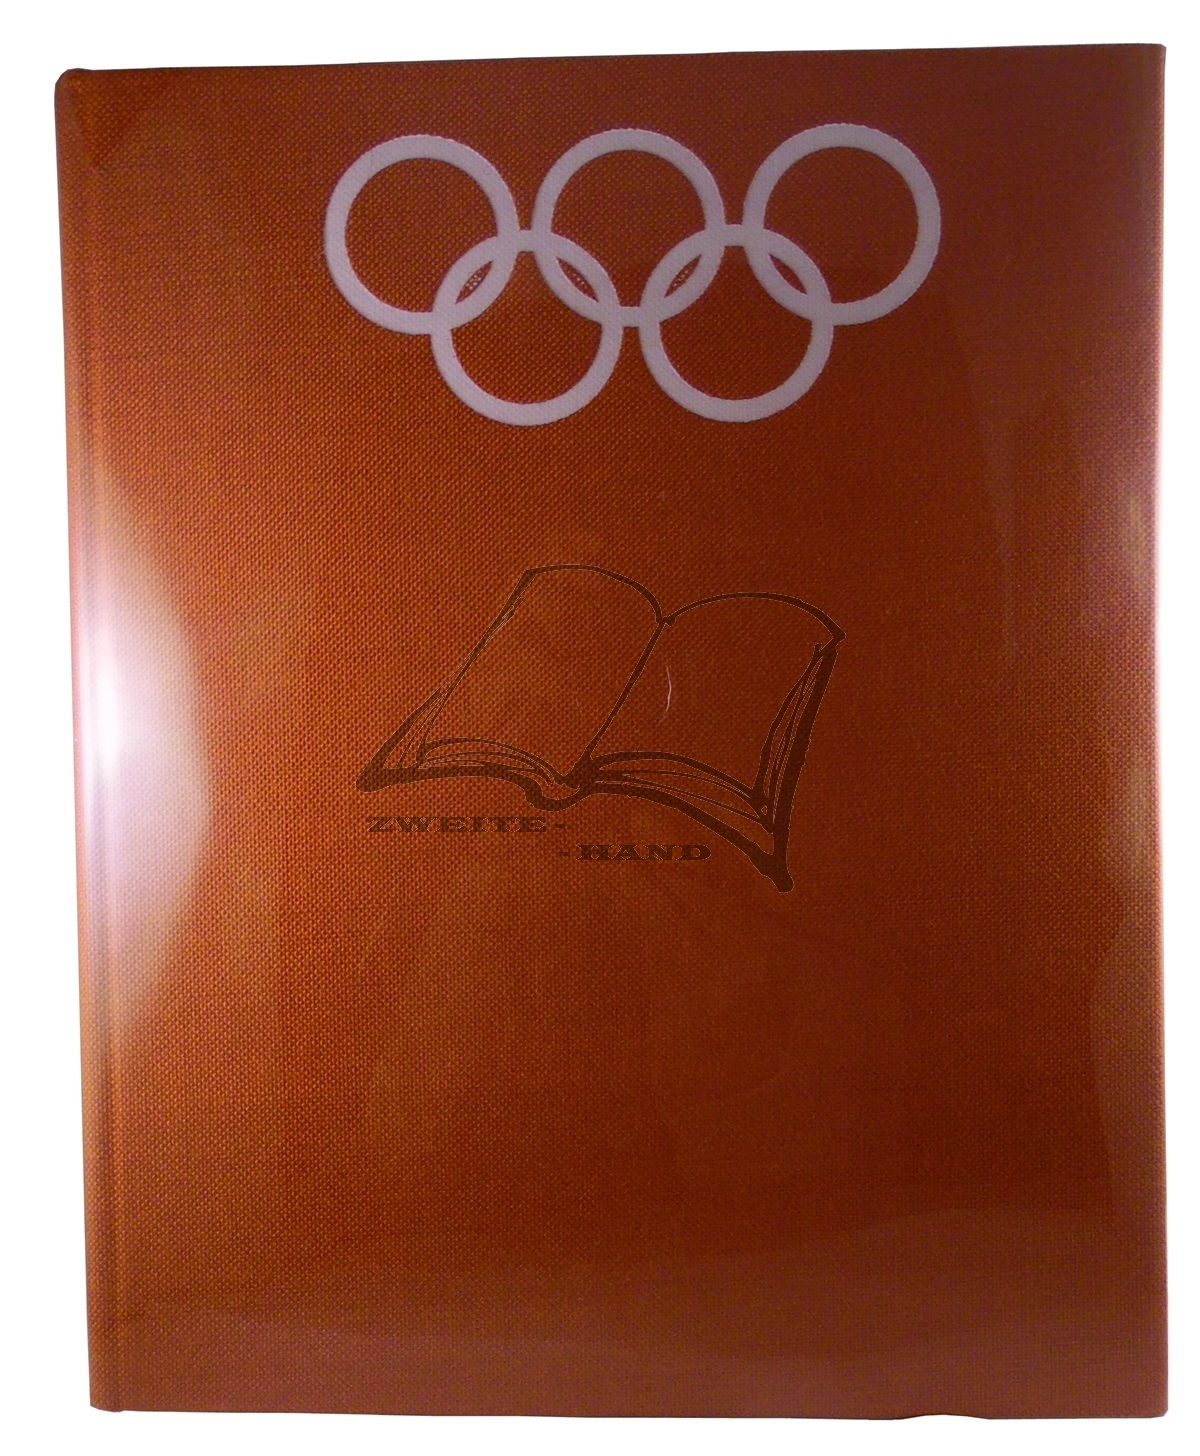 spiele der olympiade montreal 1976. Black Bedroom Furniture Sets. Home Design Ideas